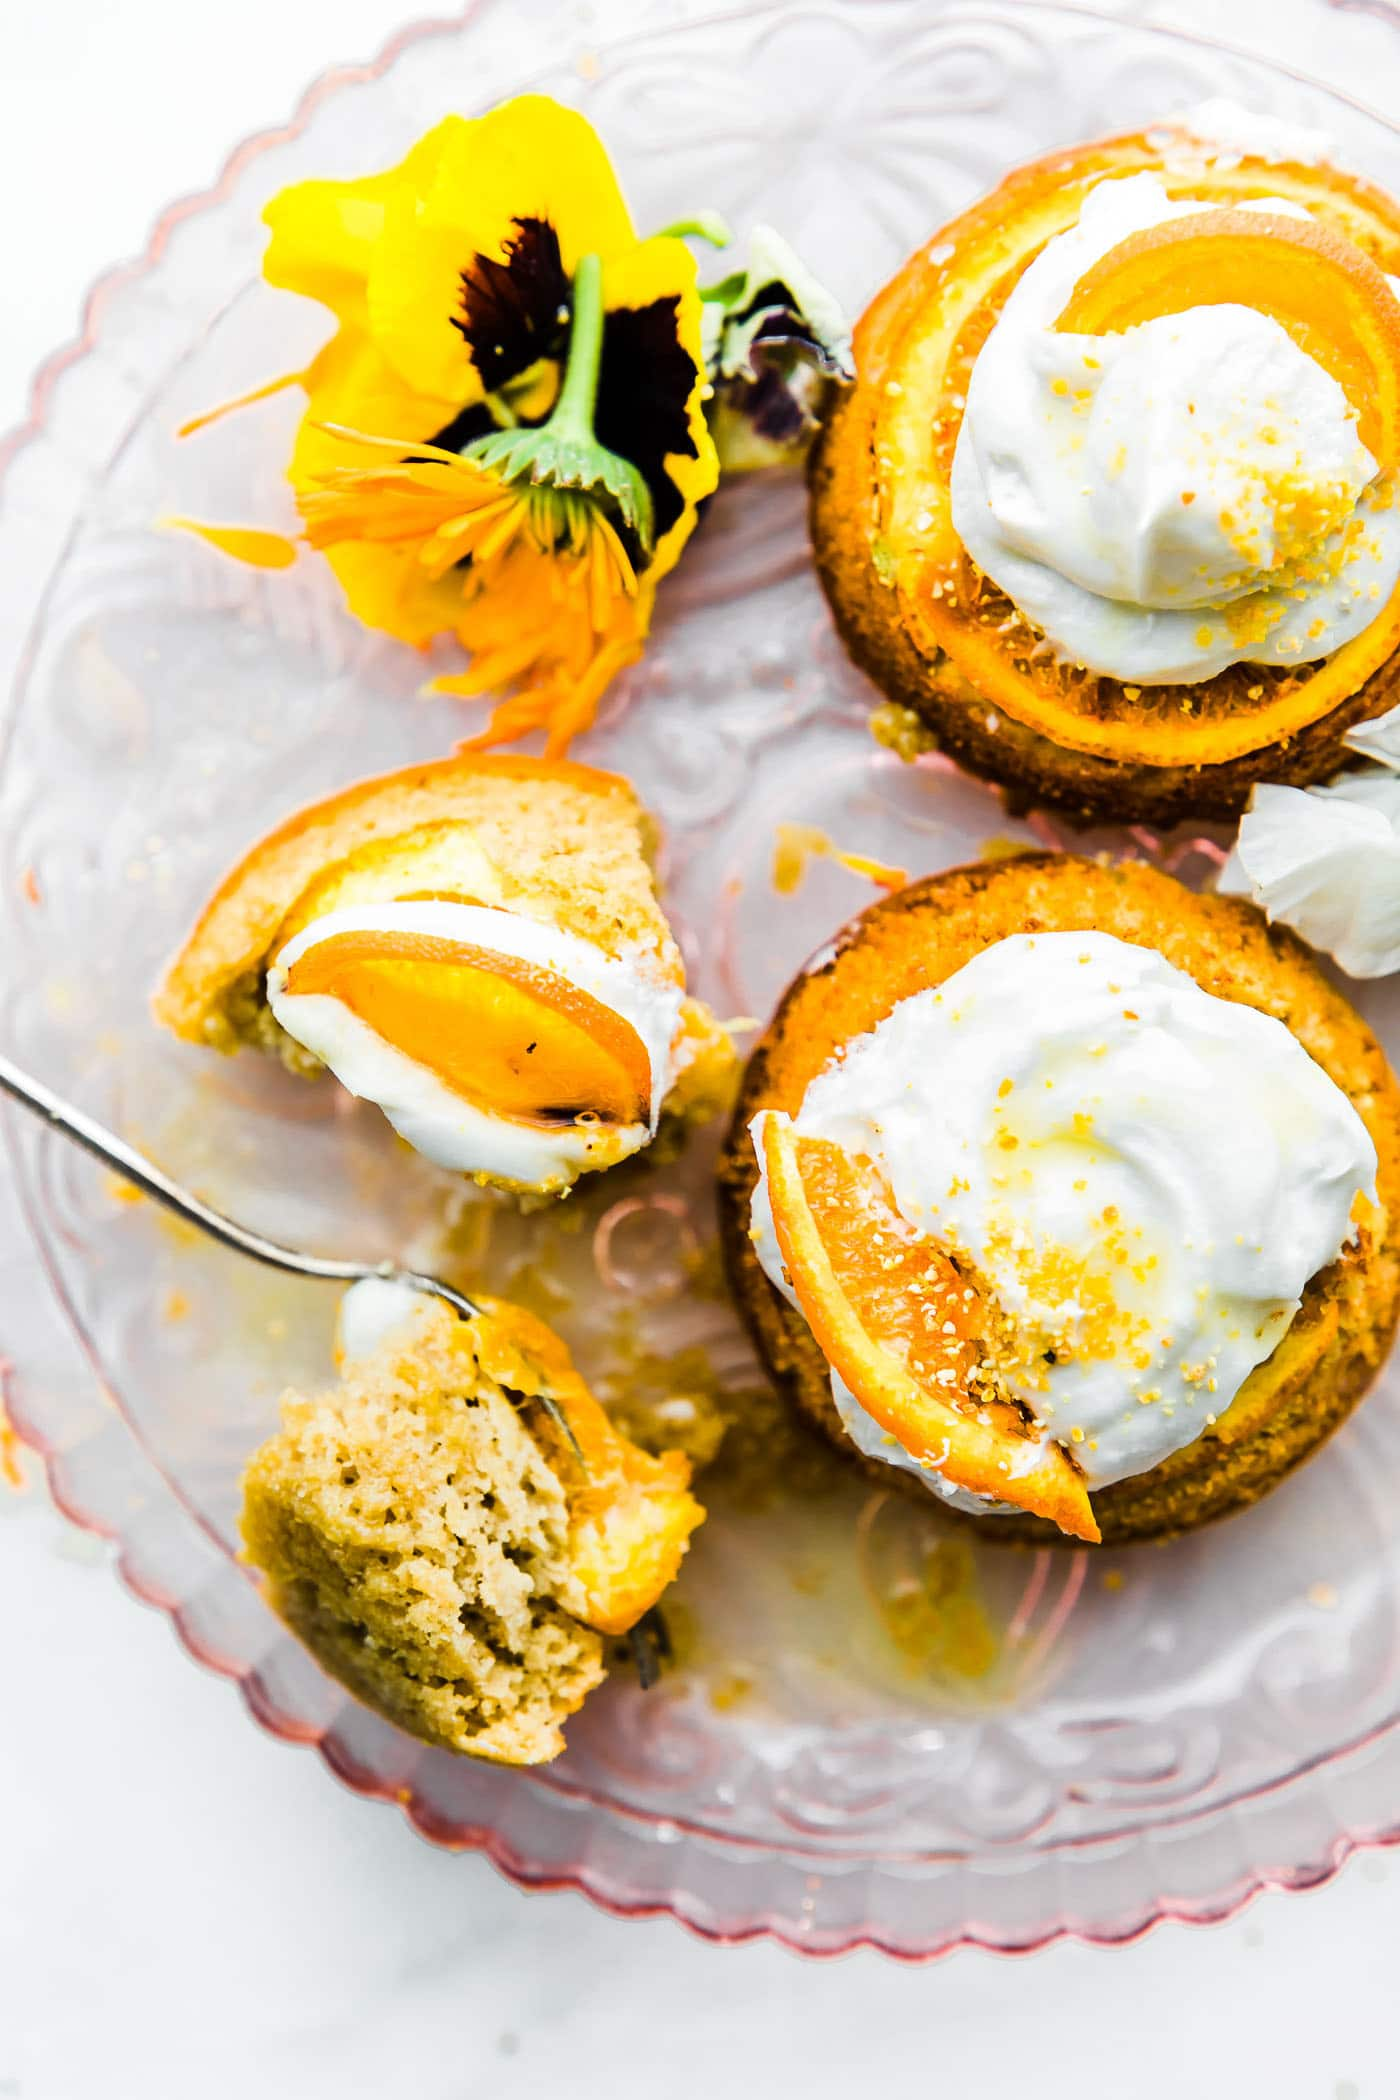 Orange Mini Paleo Upside cake (cakes) with cream on plate with fork.